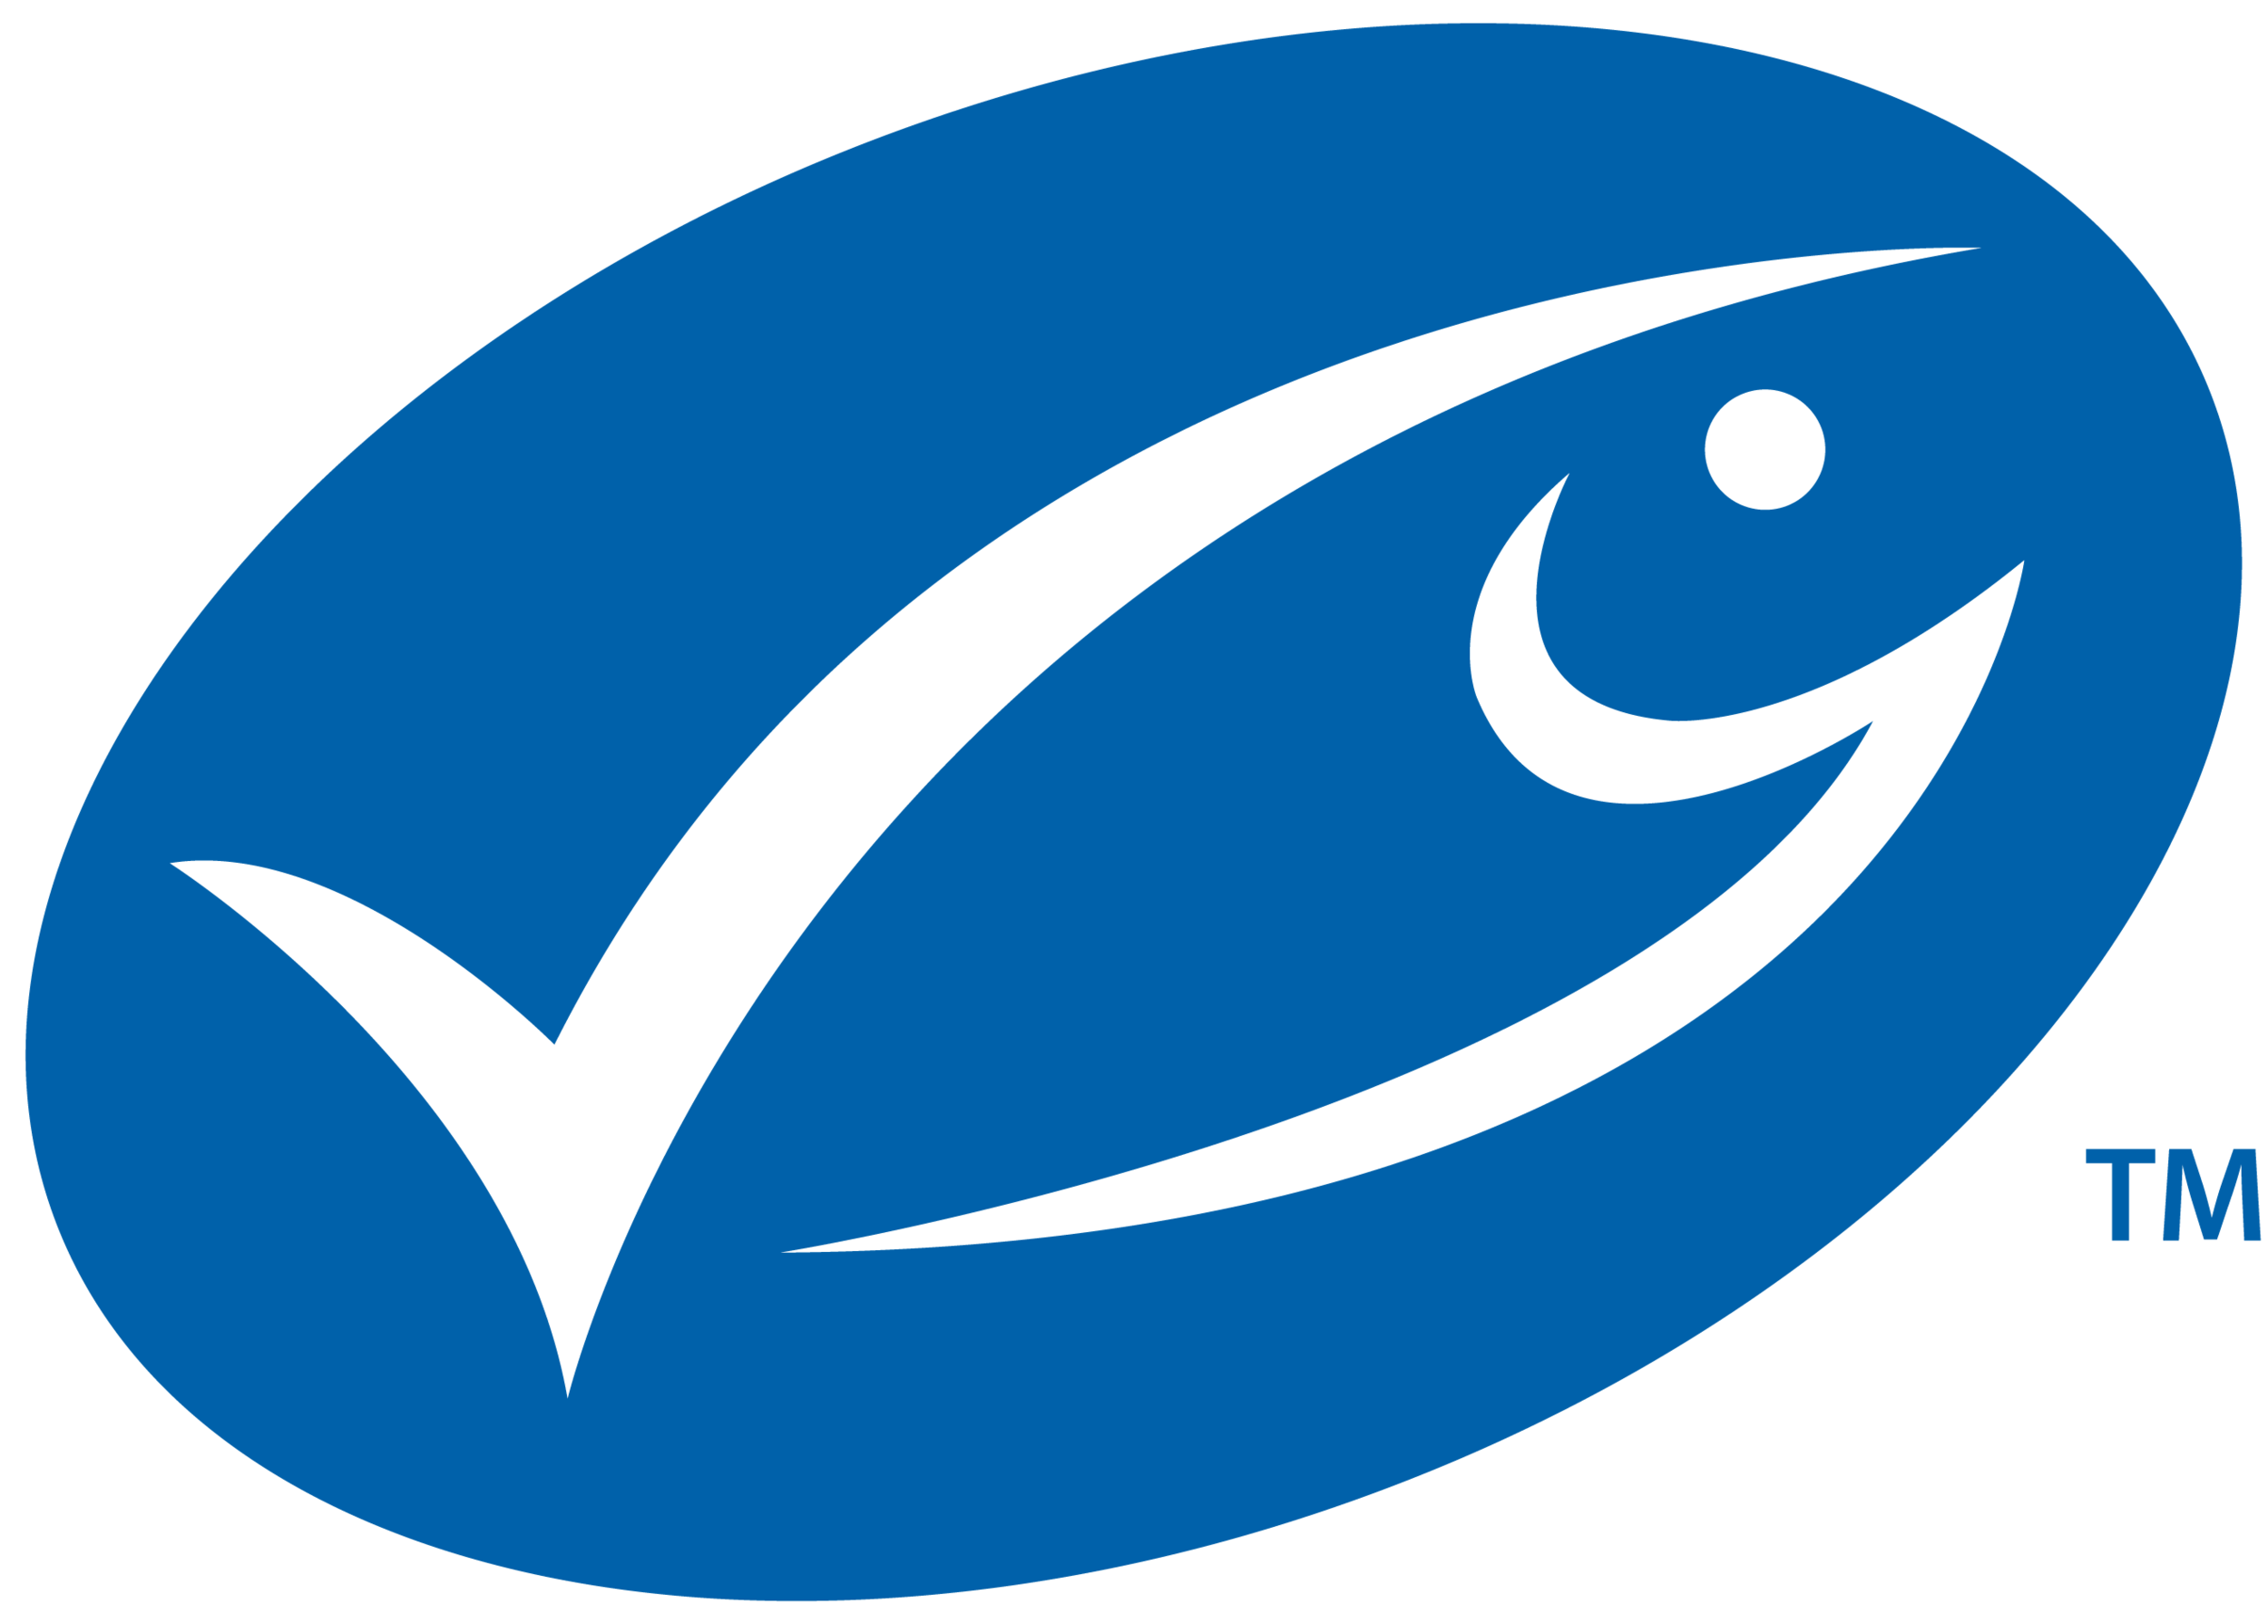 When you see the blue 'tick' logo you can be sure the fish you are buying has been sustainably sourced